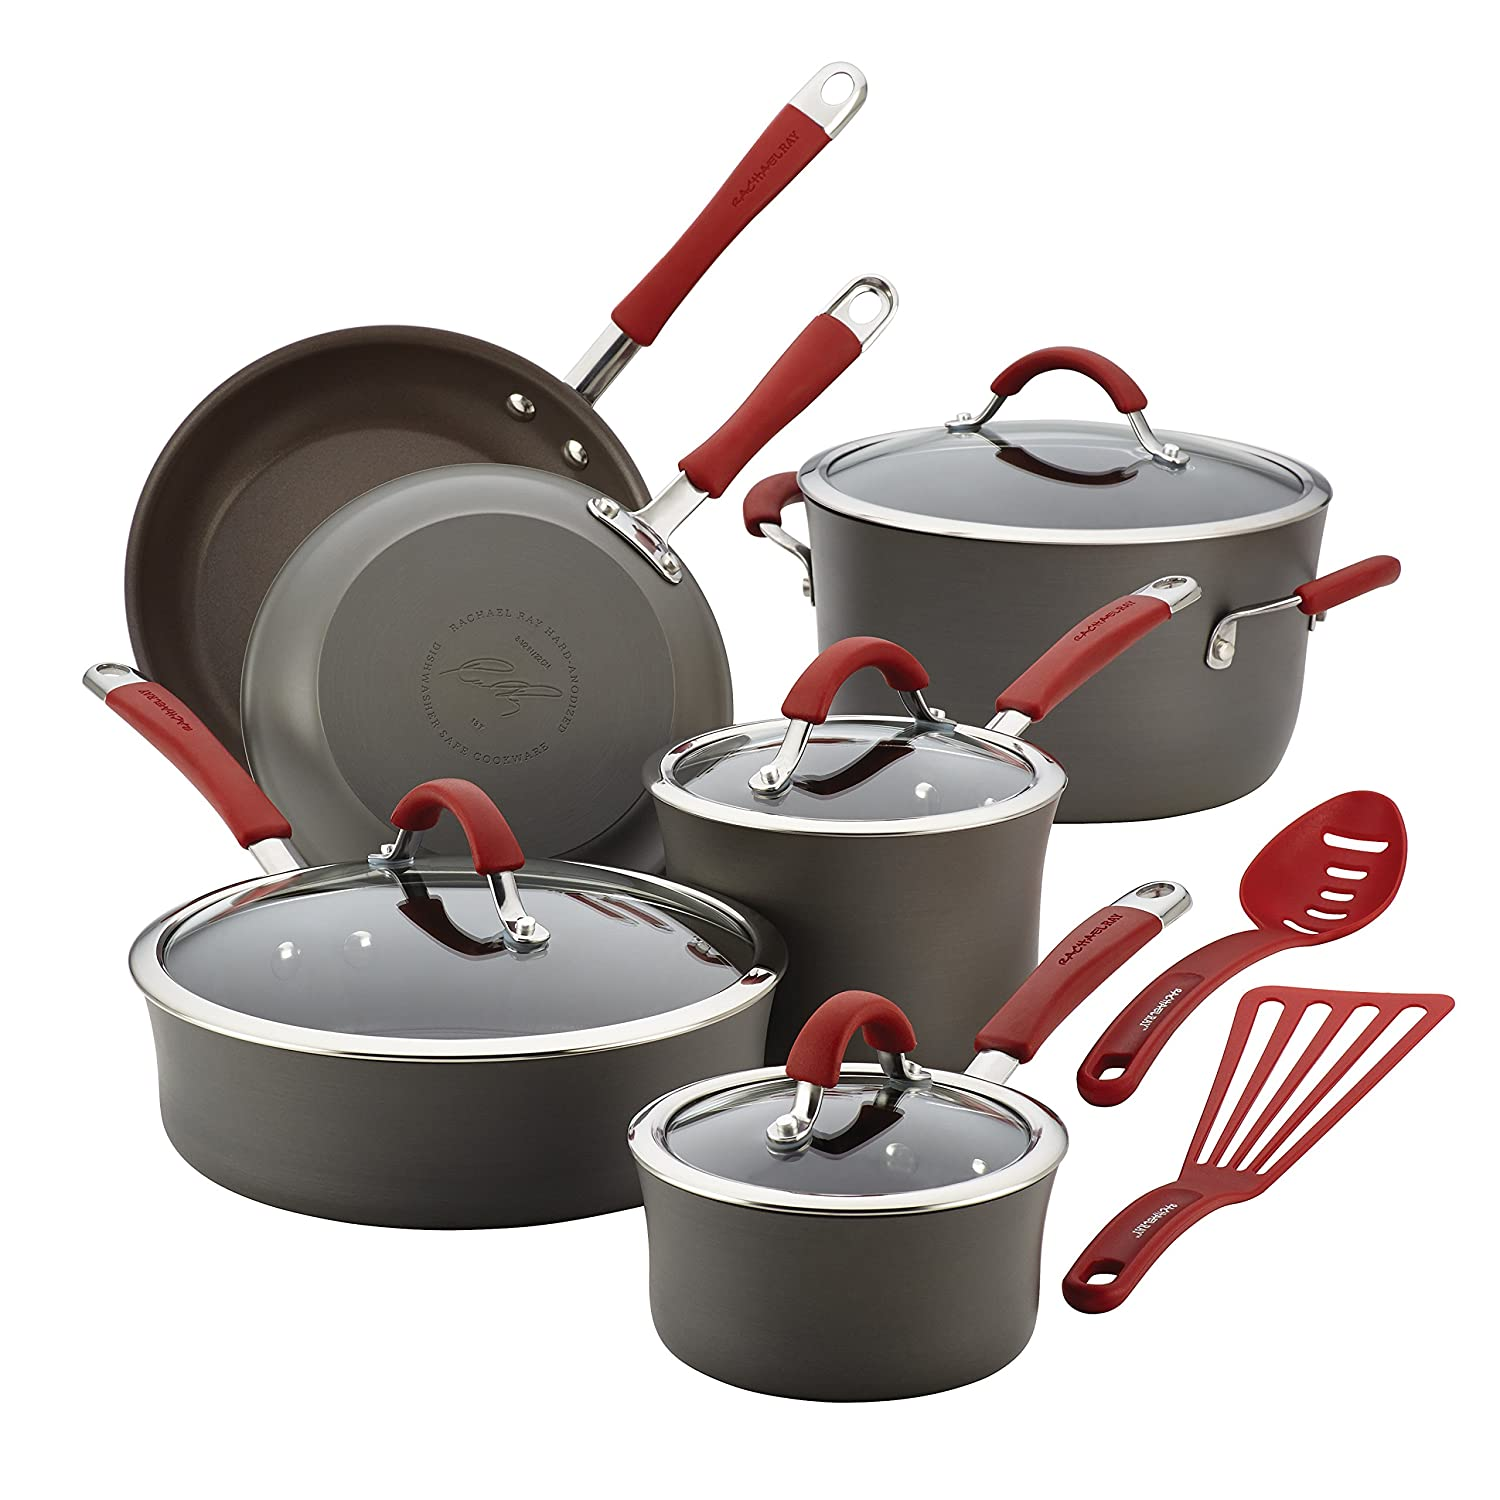 cookware set | 13 Discount Kitchenware You Must Grab on Cyber Monday